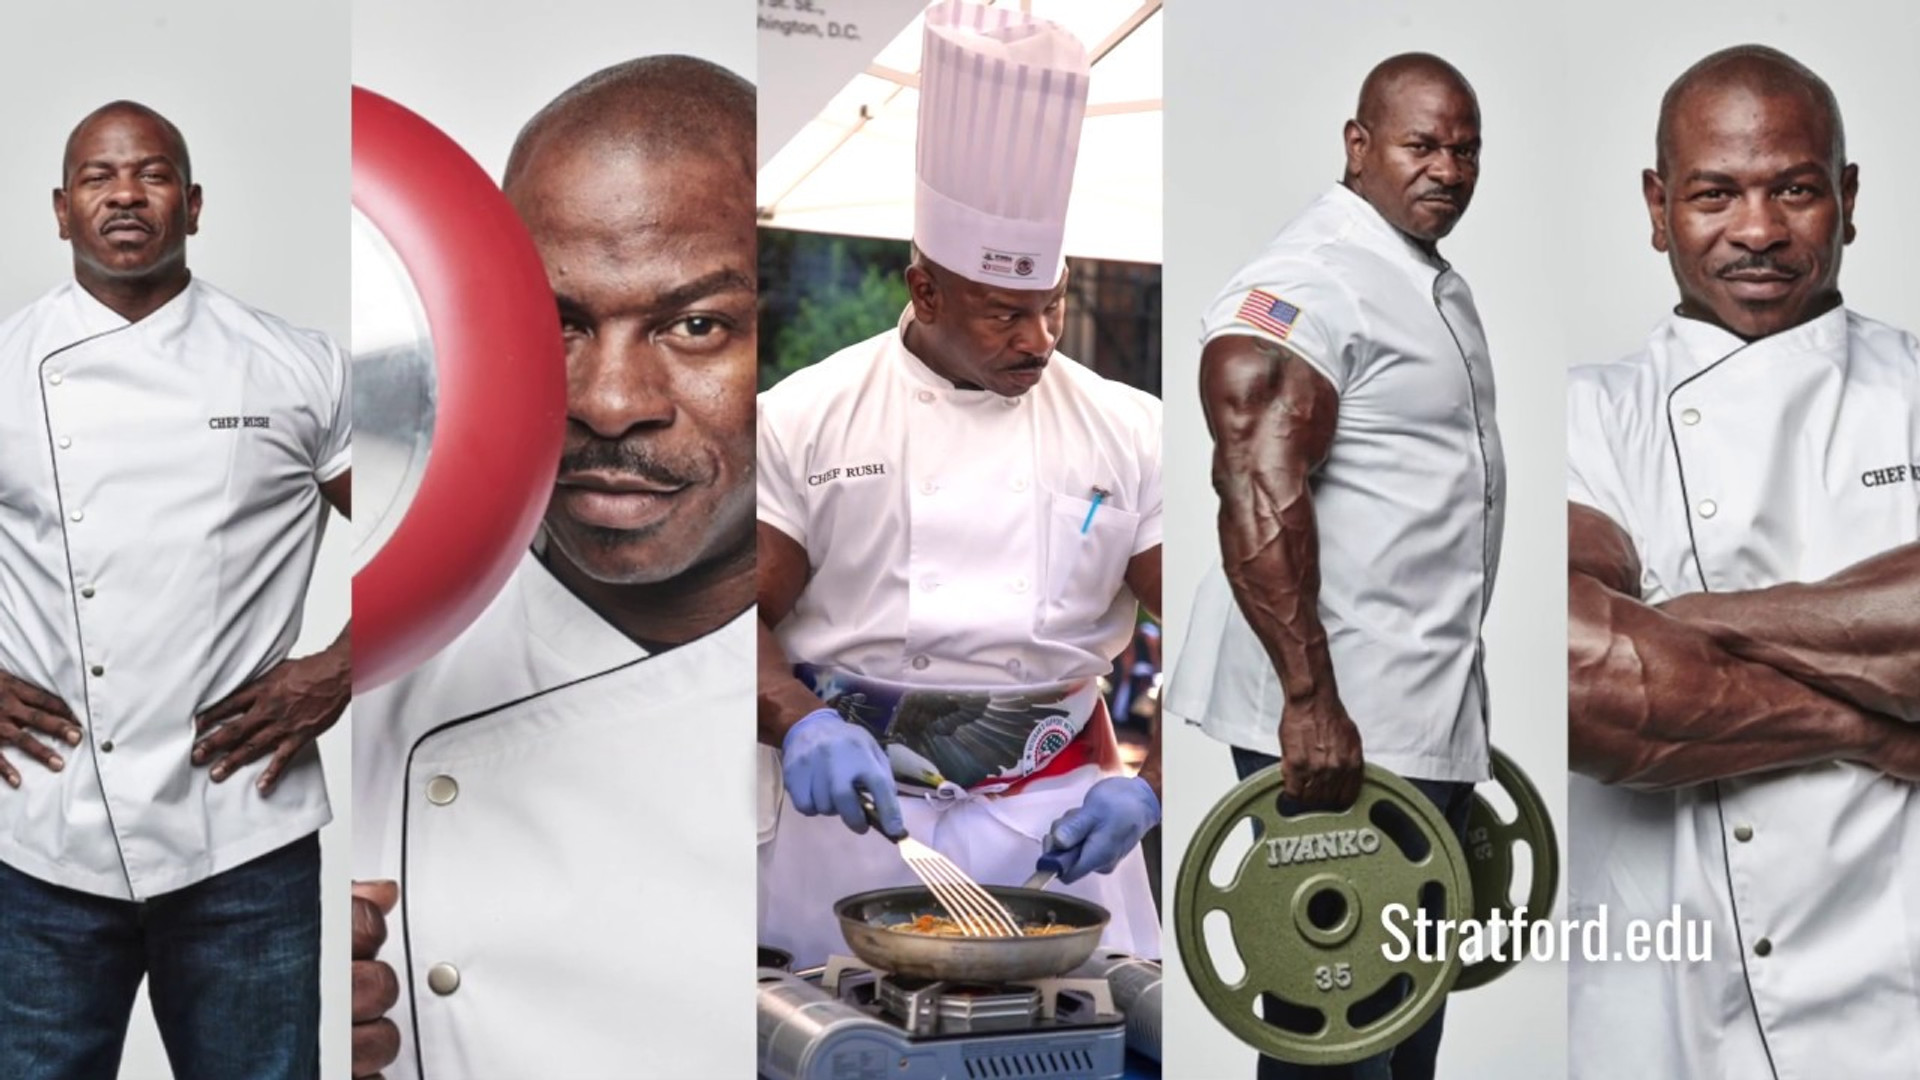 YOU CAN— Chef Rush 2